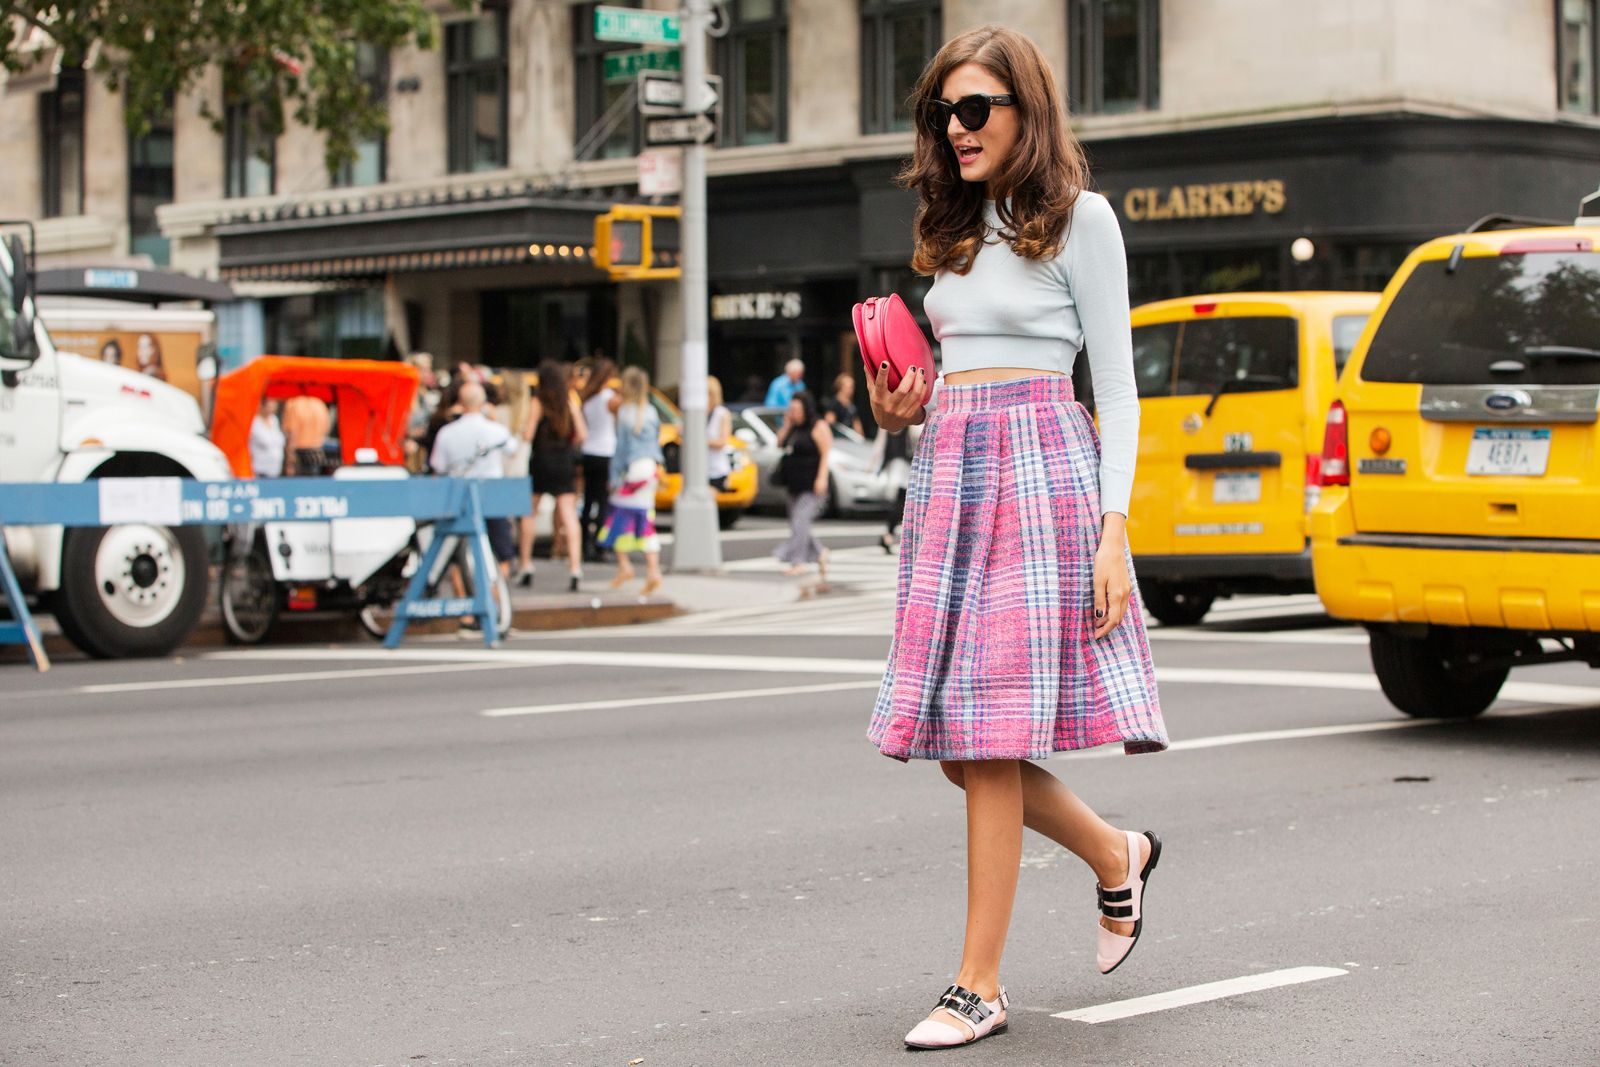 The NYFW Street-Style Looks That Truly Stunned #refinery29  http://www.refinery29.com/2014/09/73987/new-york-fashion-week-2014-street-style-photos#slide10  Eleonora Carisi does pink in three ways.